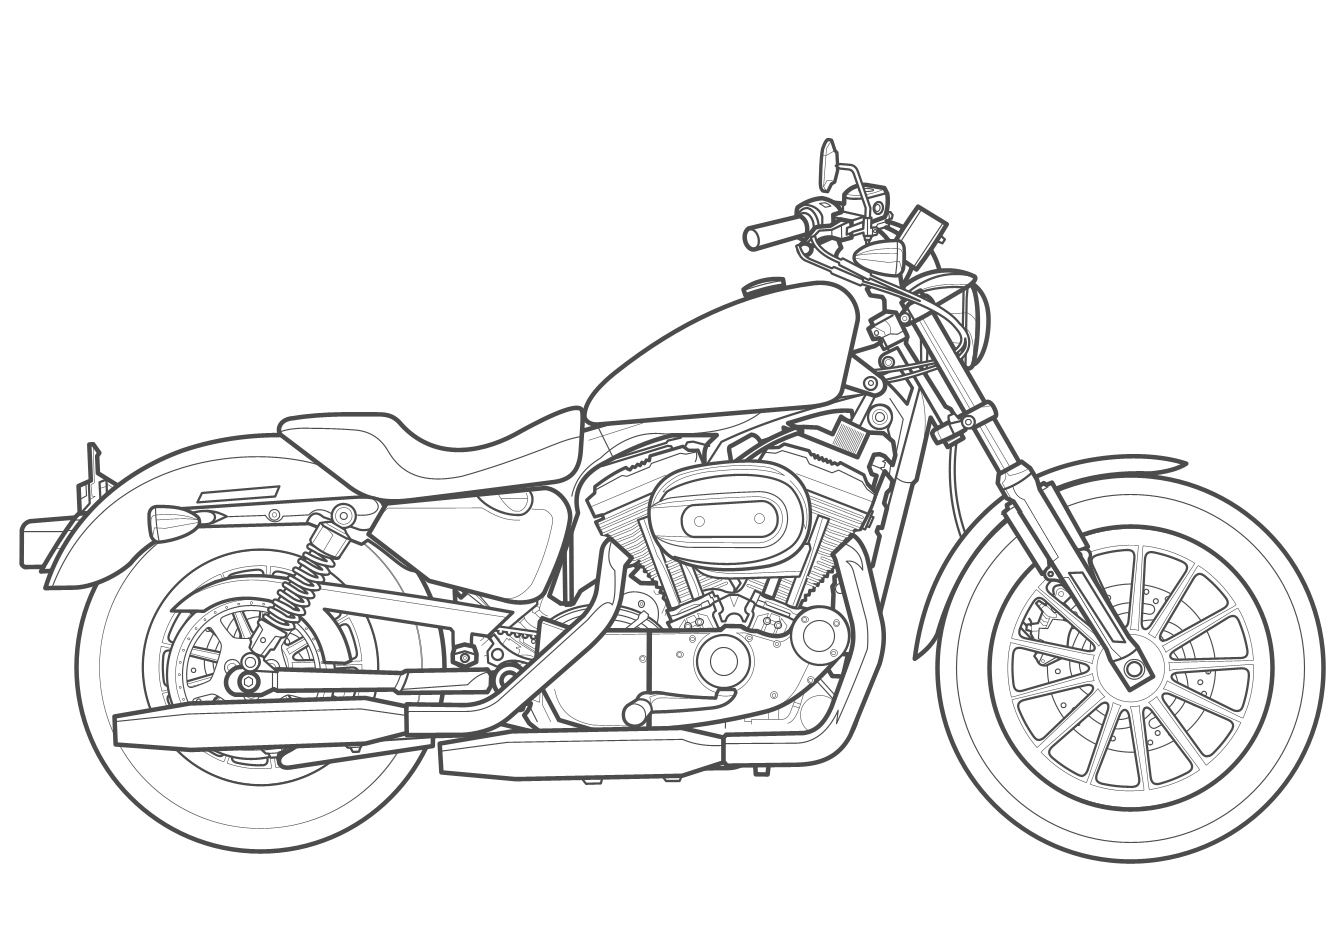 Harley Davidson Motorcycle Drawing At Getdrawings